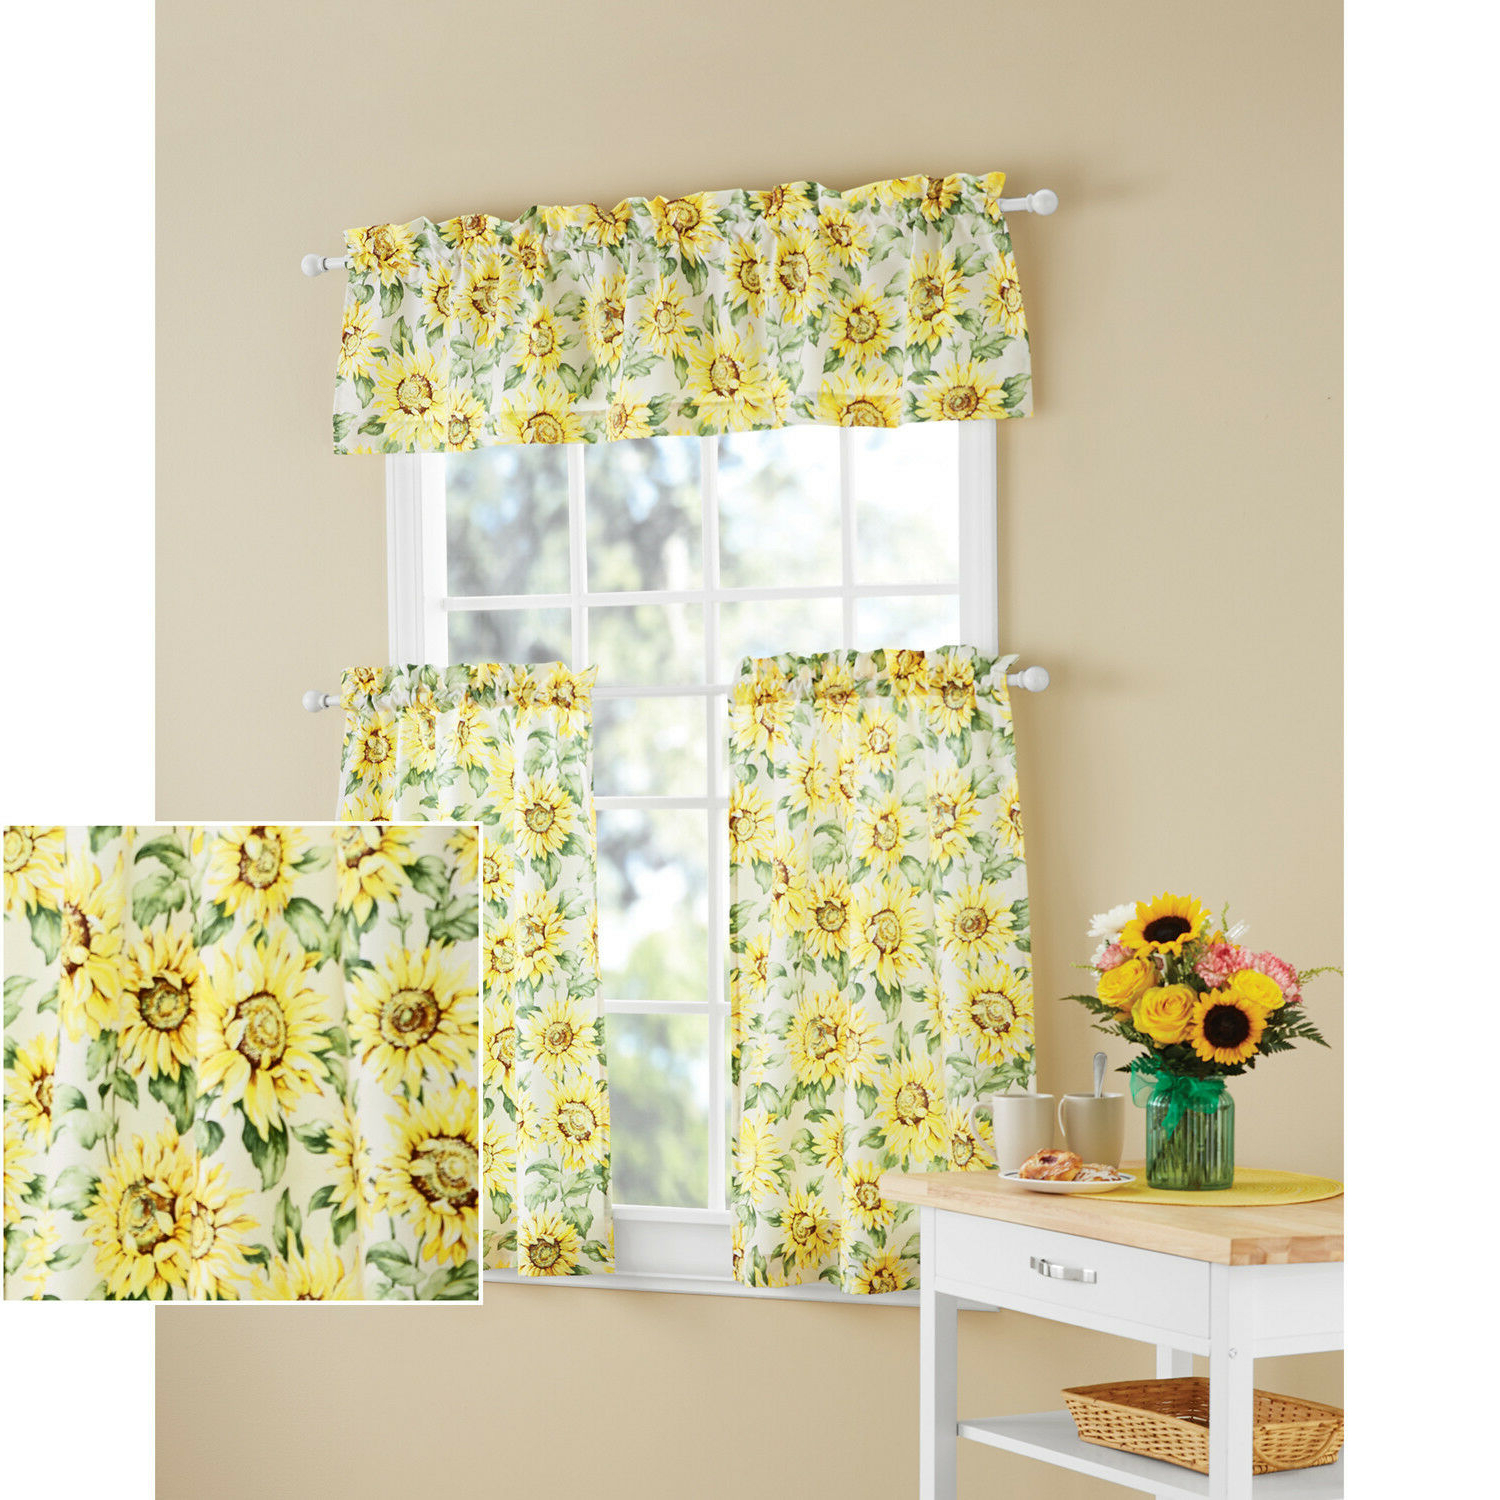 Lodge Plaid 3 Piece Kitchen Curtain Tier And Valance Sets Intended For Favorite Sunflower 3 Piece Kitchen Curtain Tier And Valance Set Home Decor Room  Window (Gallery 7 of 20)